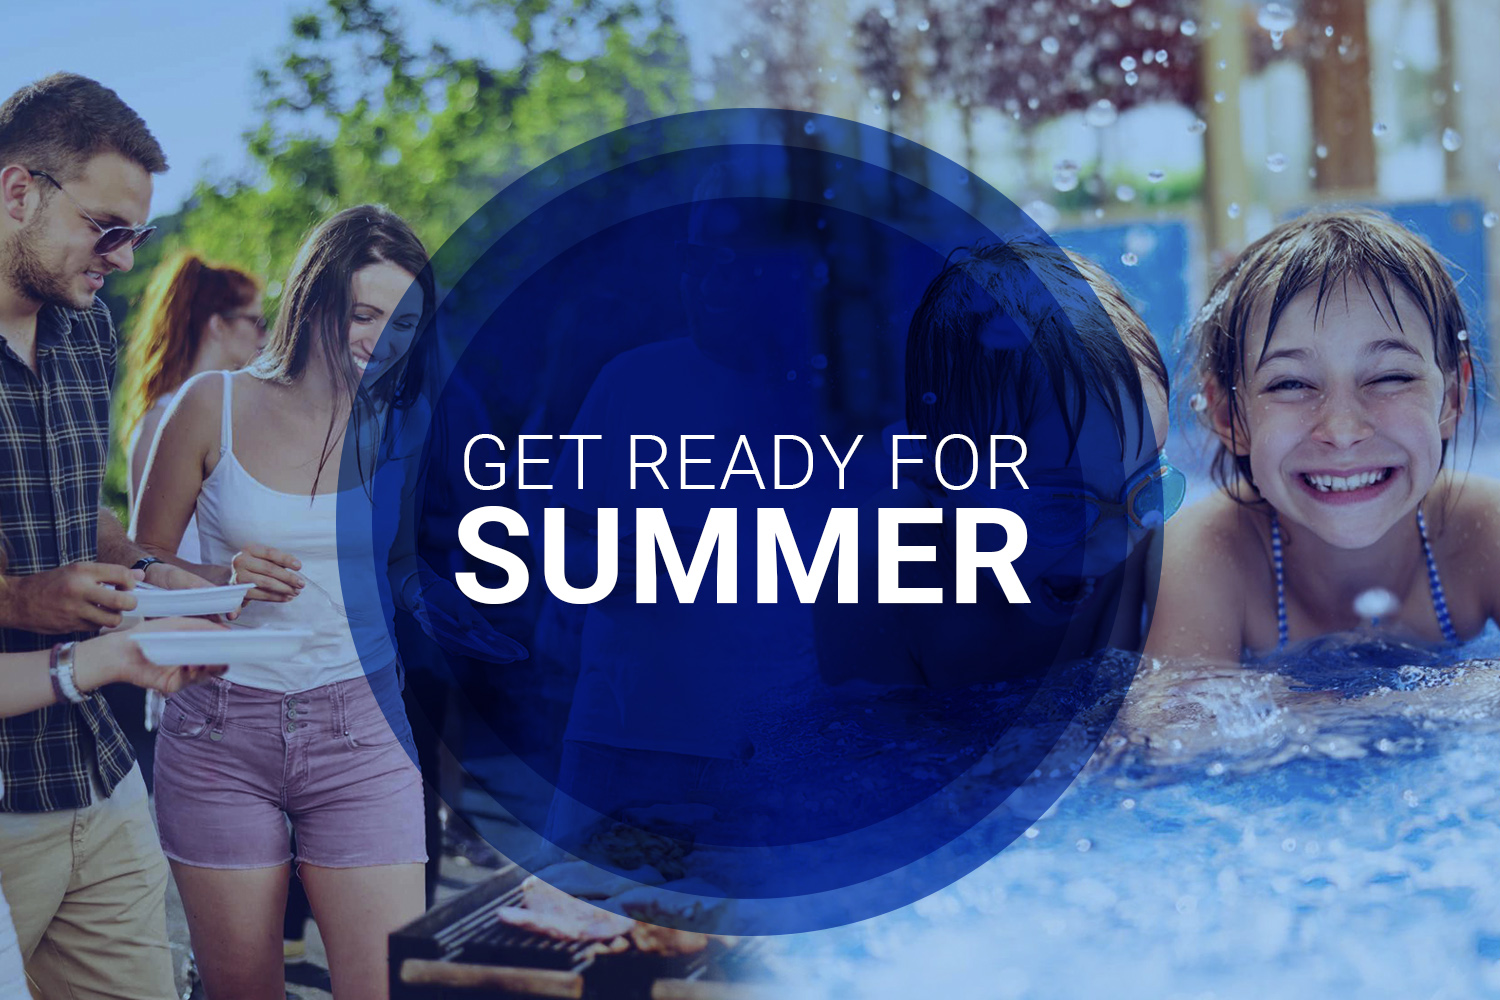 Get ready for summer...